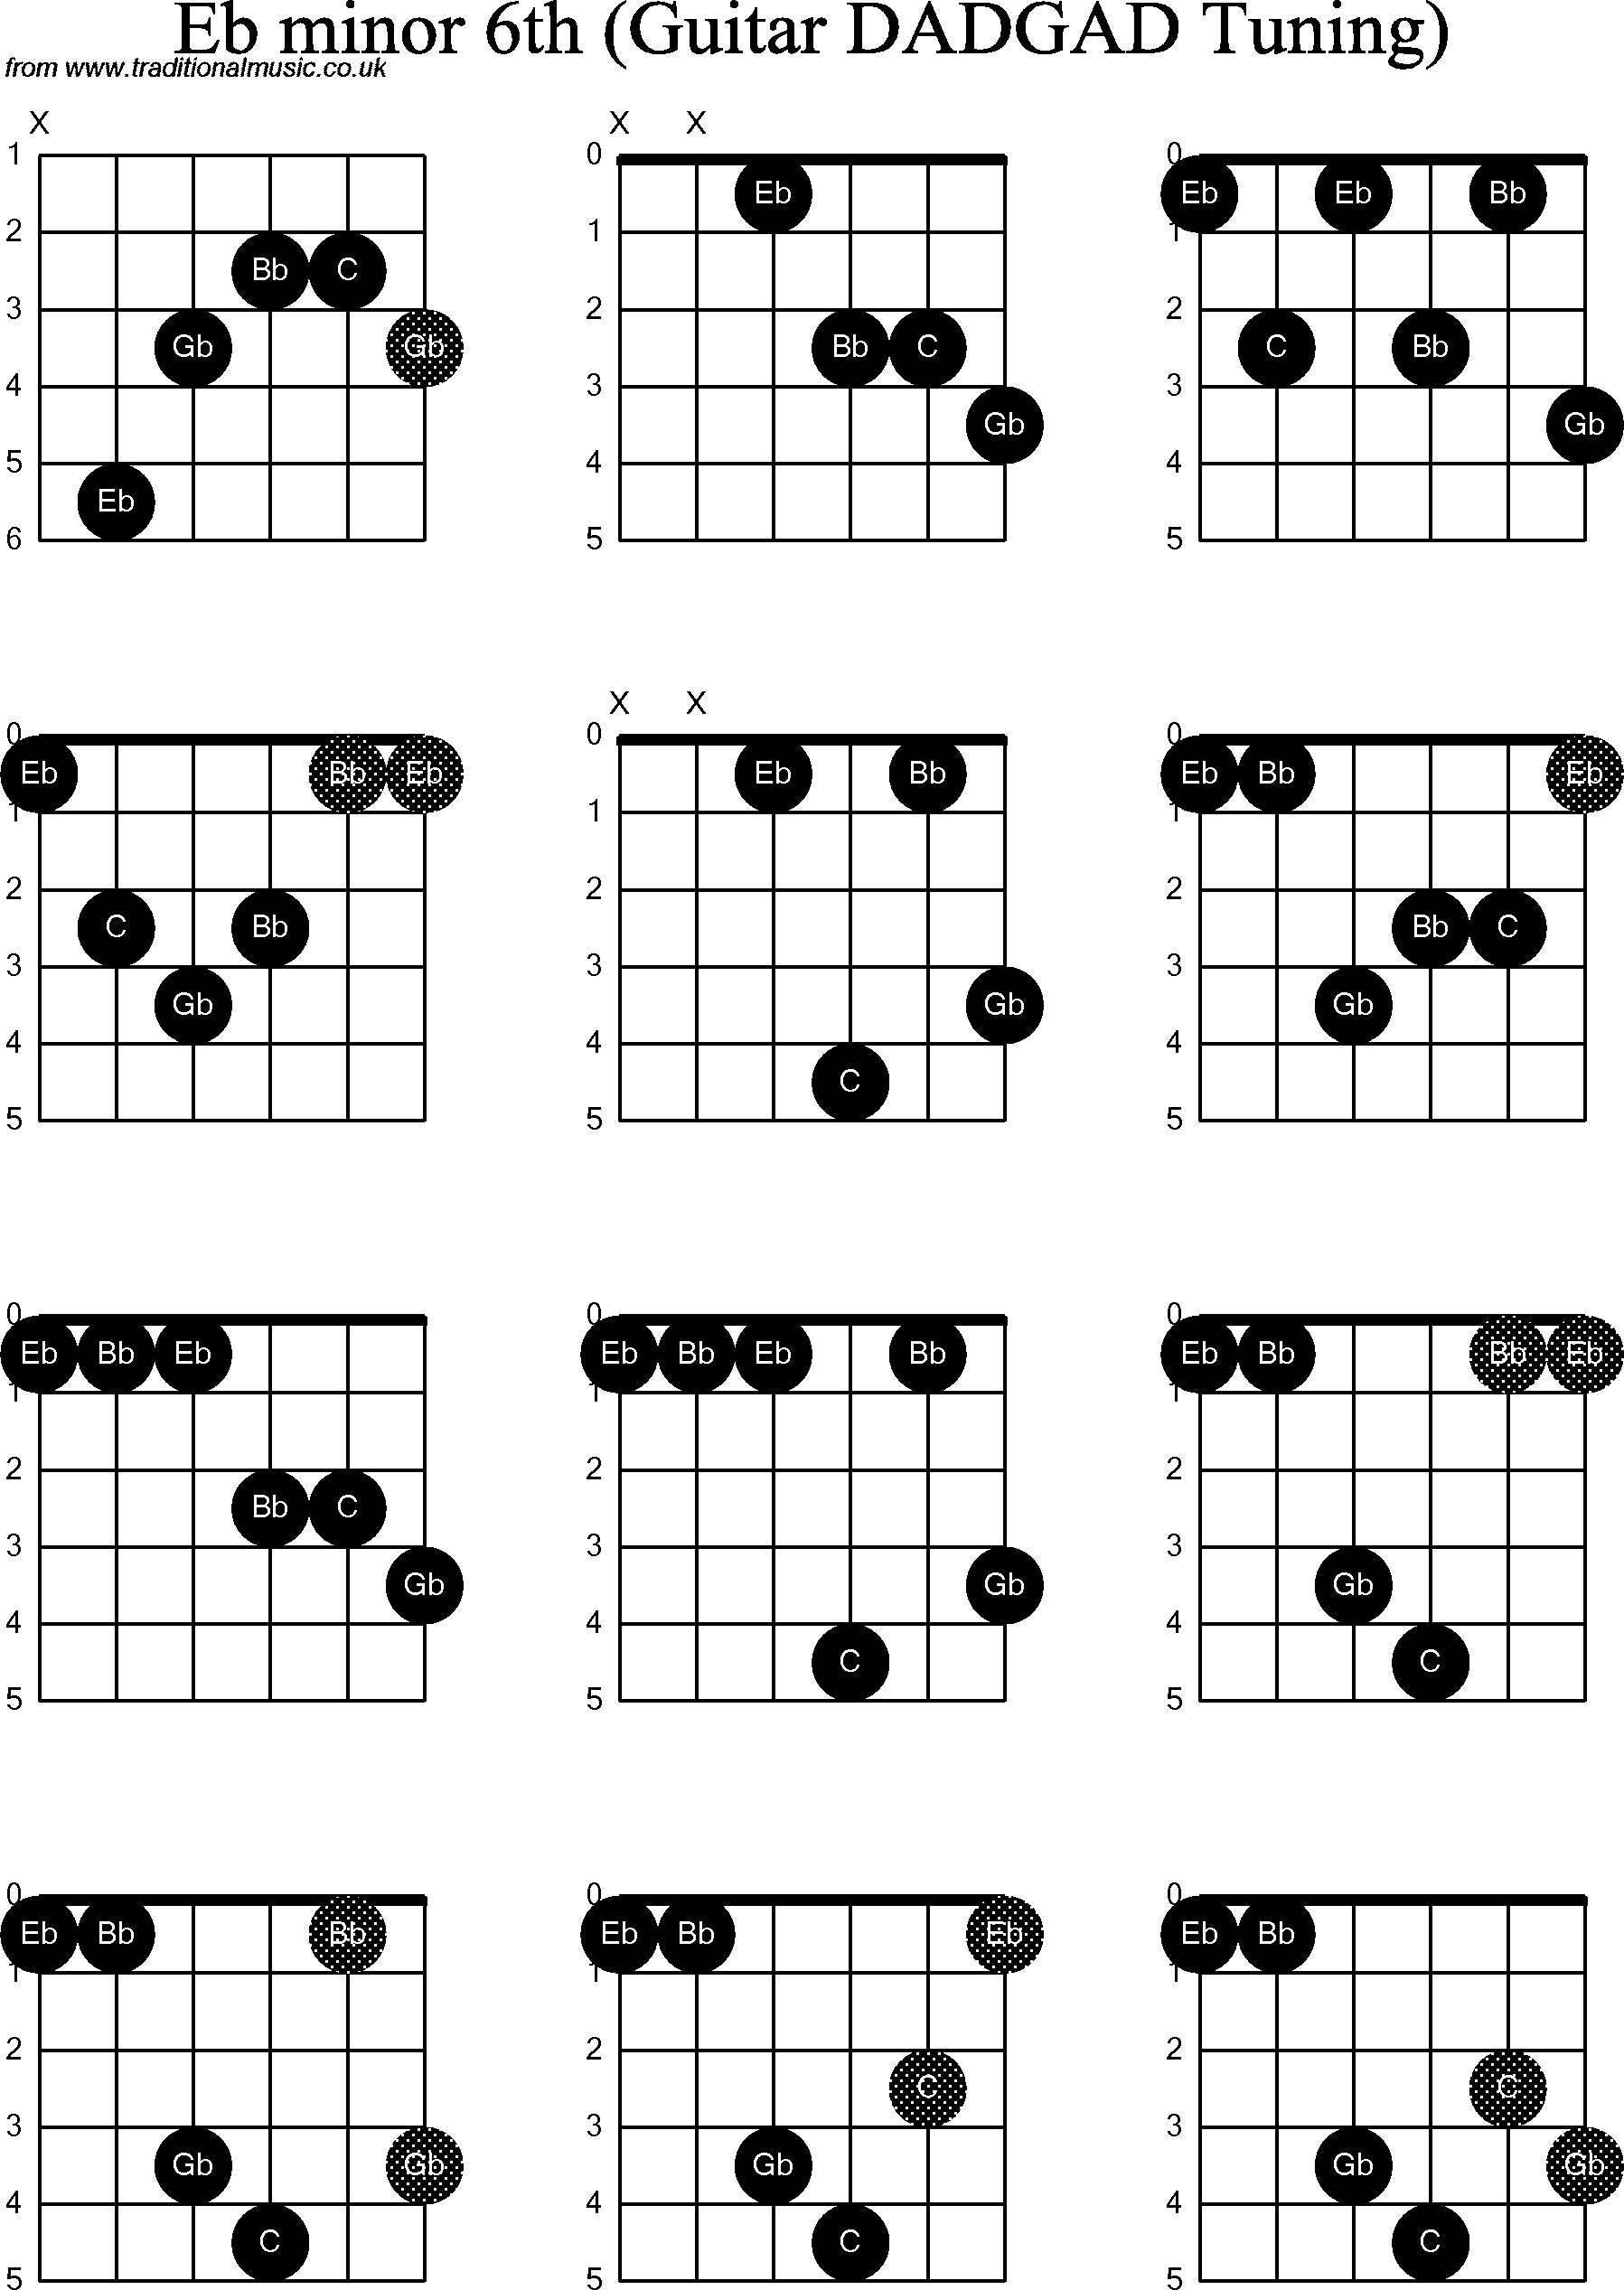 Chord diagrams D Modal Guitar( DADGAD): Eb Minor6th